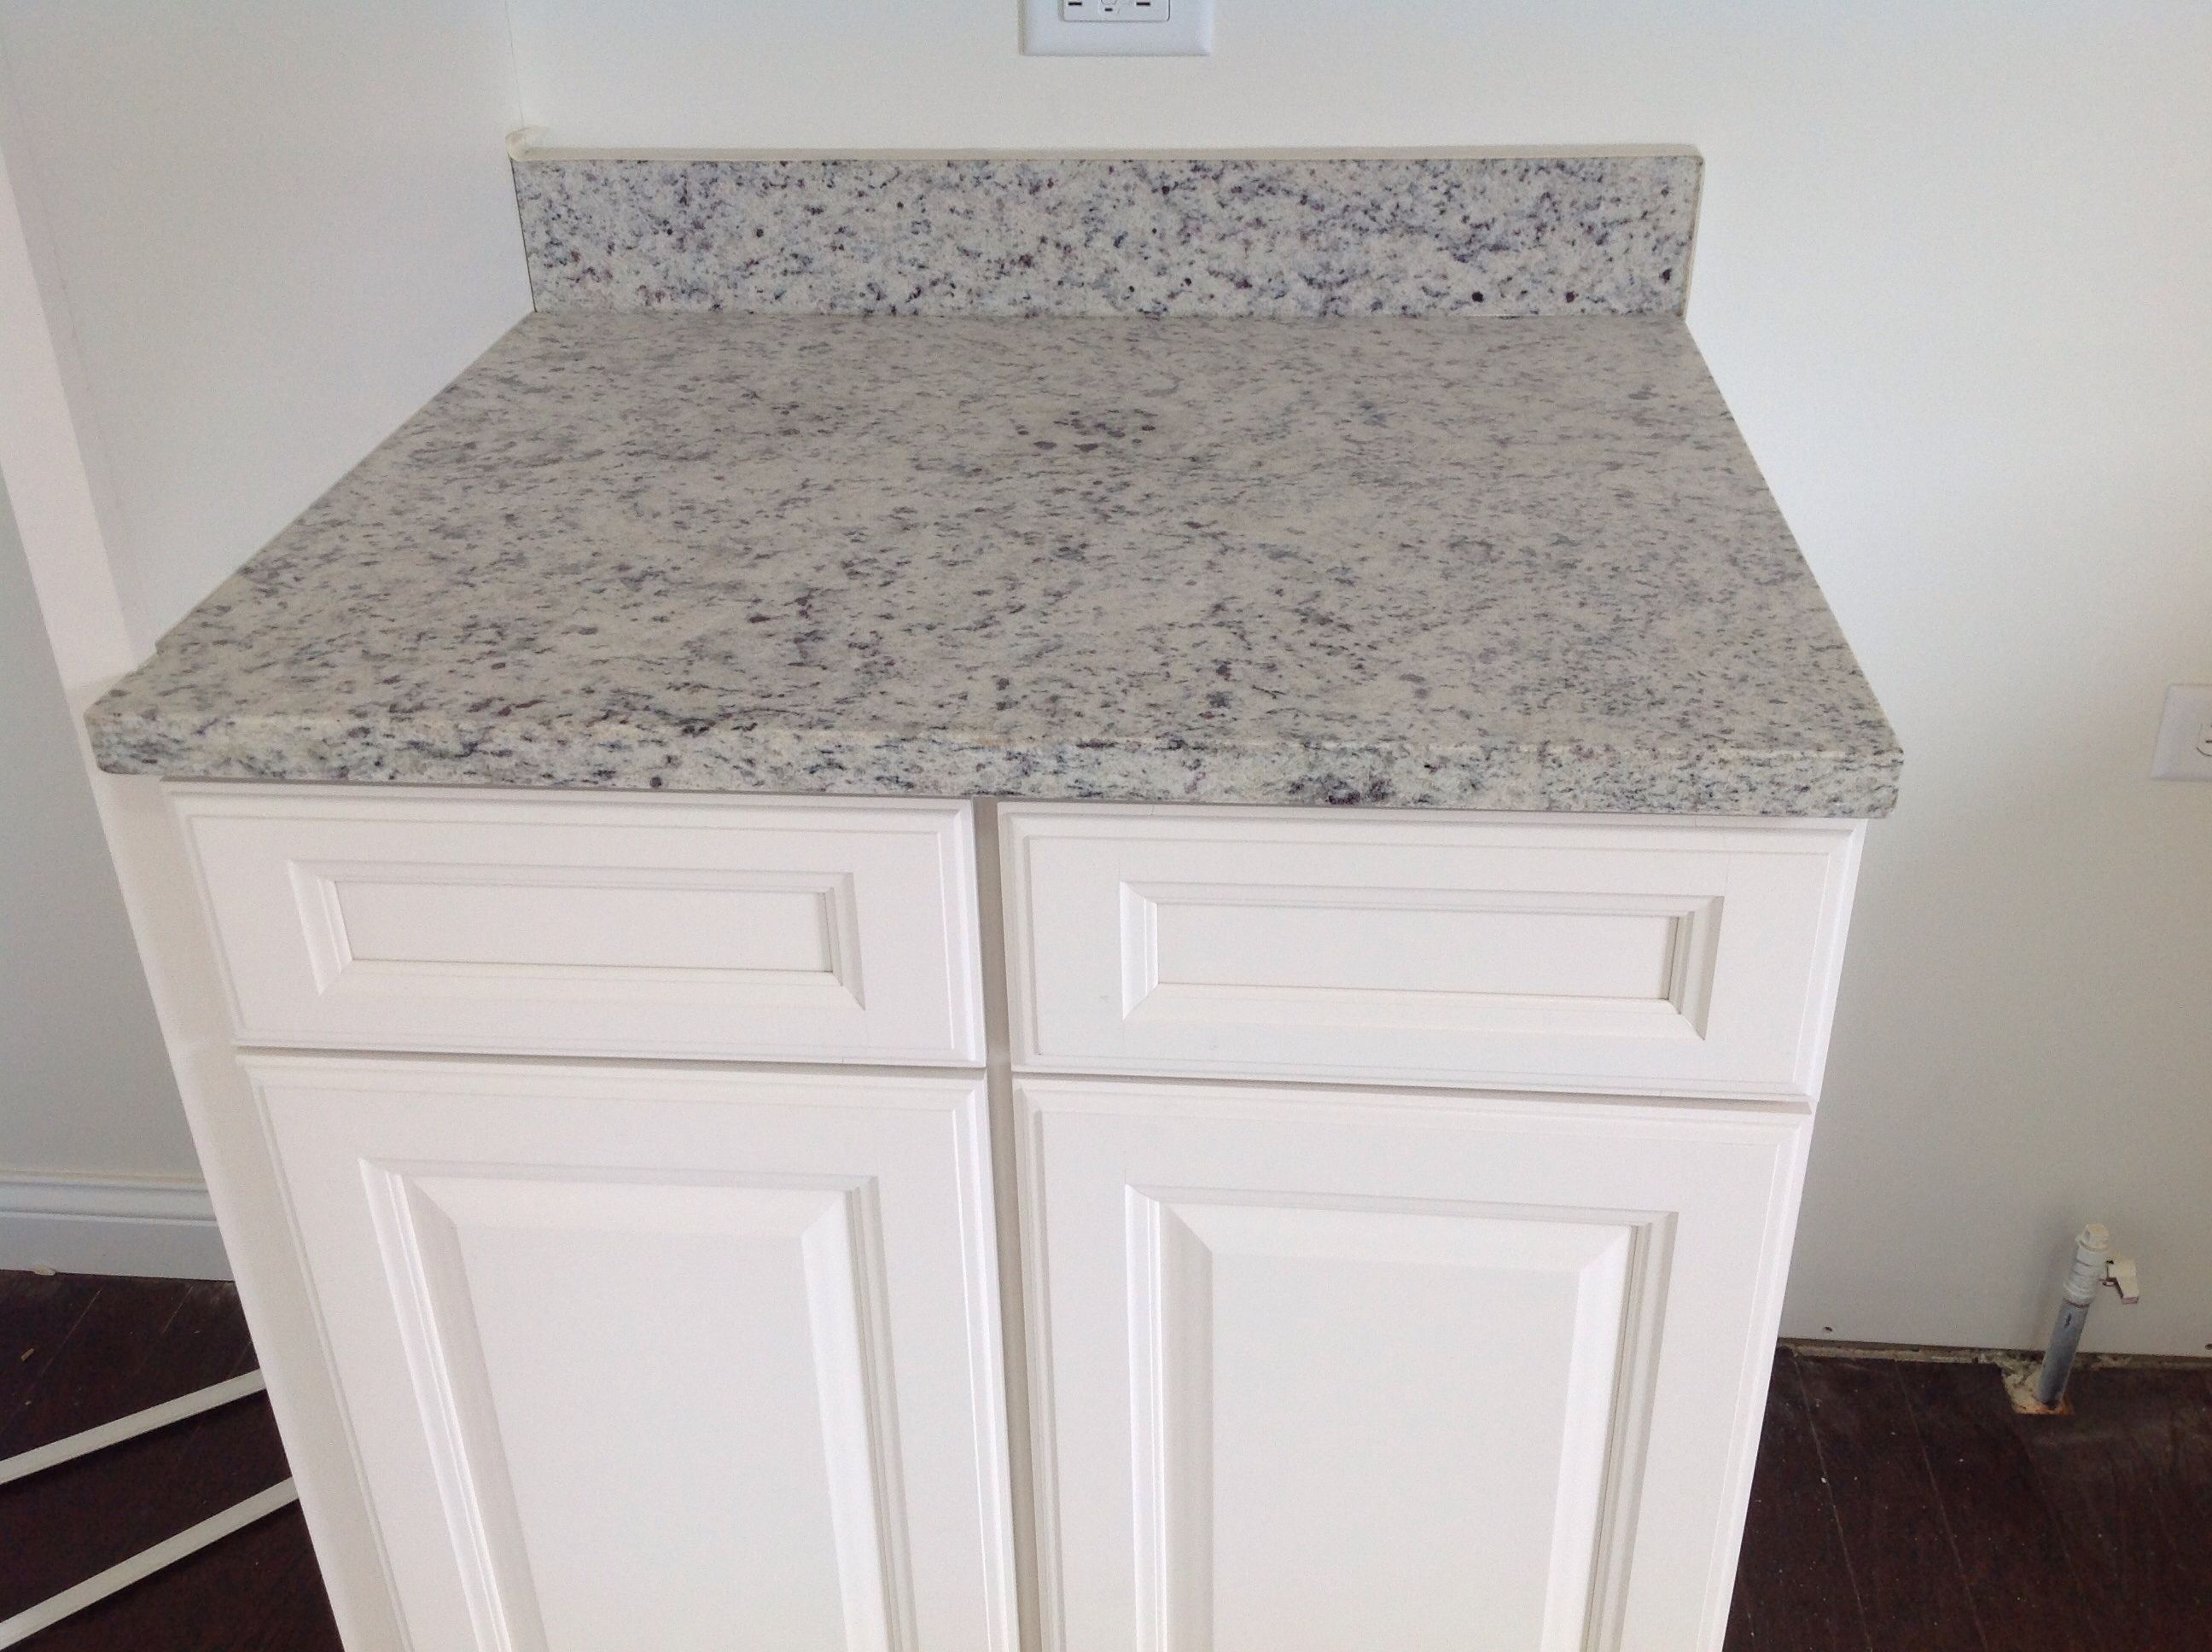 Dallas White Granite and White Cabinets This Is What Is Going